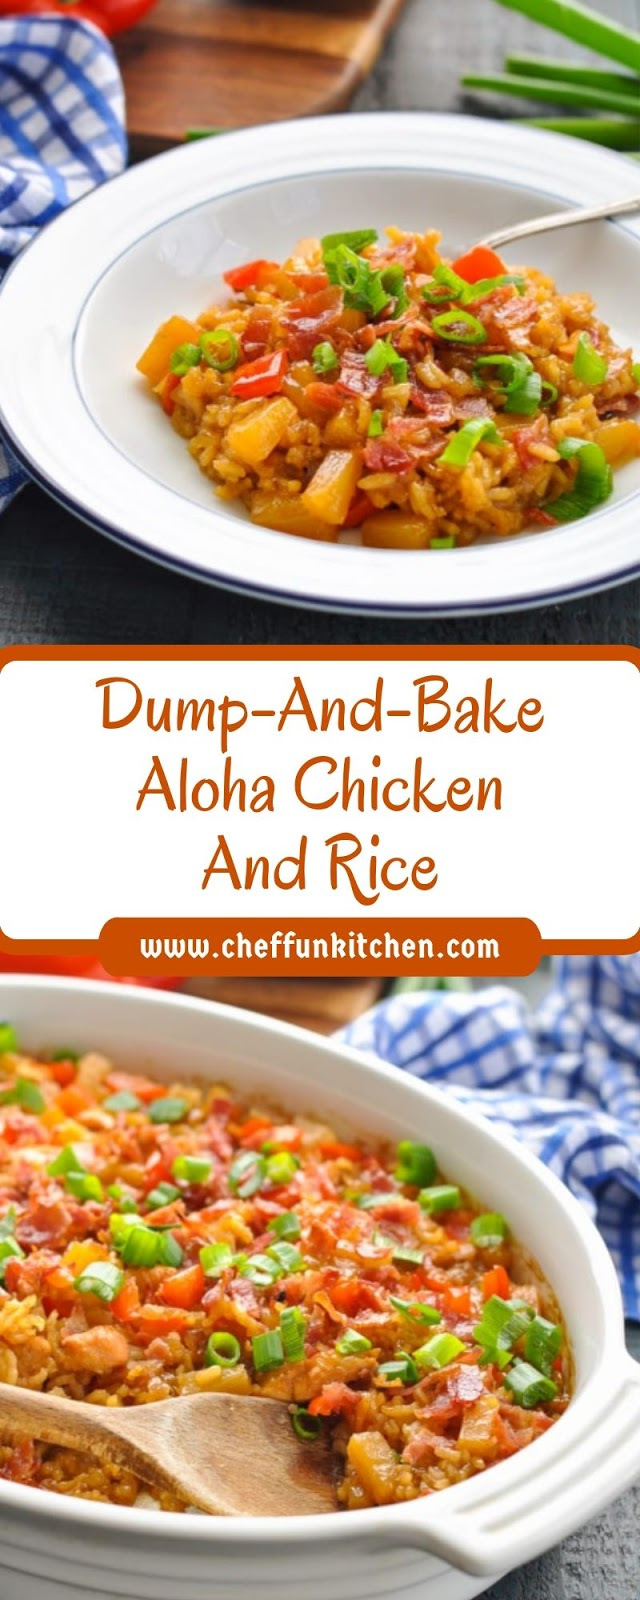 Dump-And-Bake Aloha Chicken And Rice